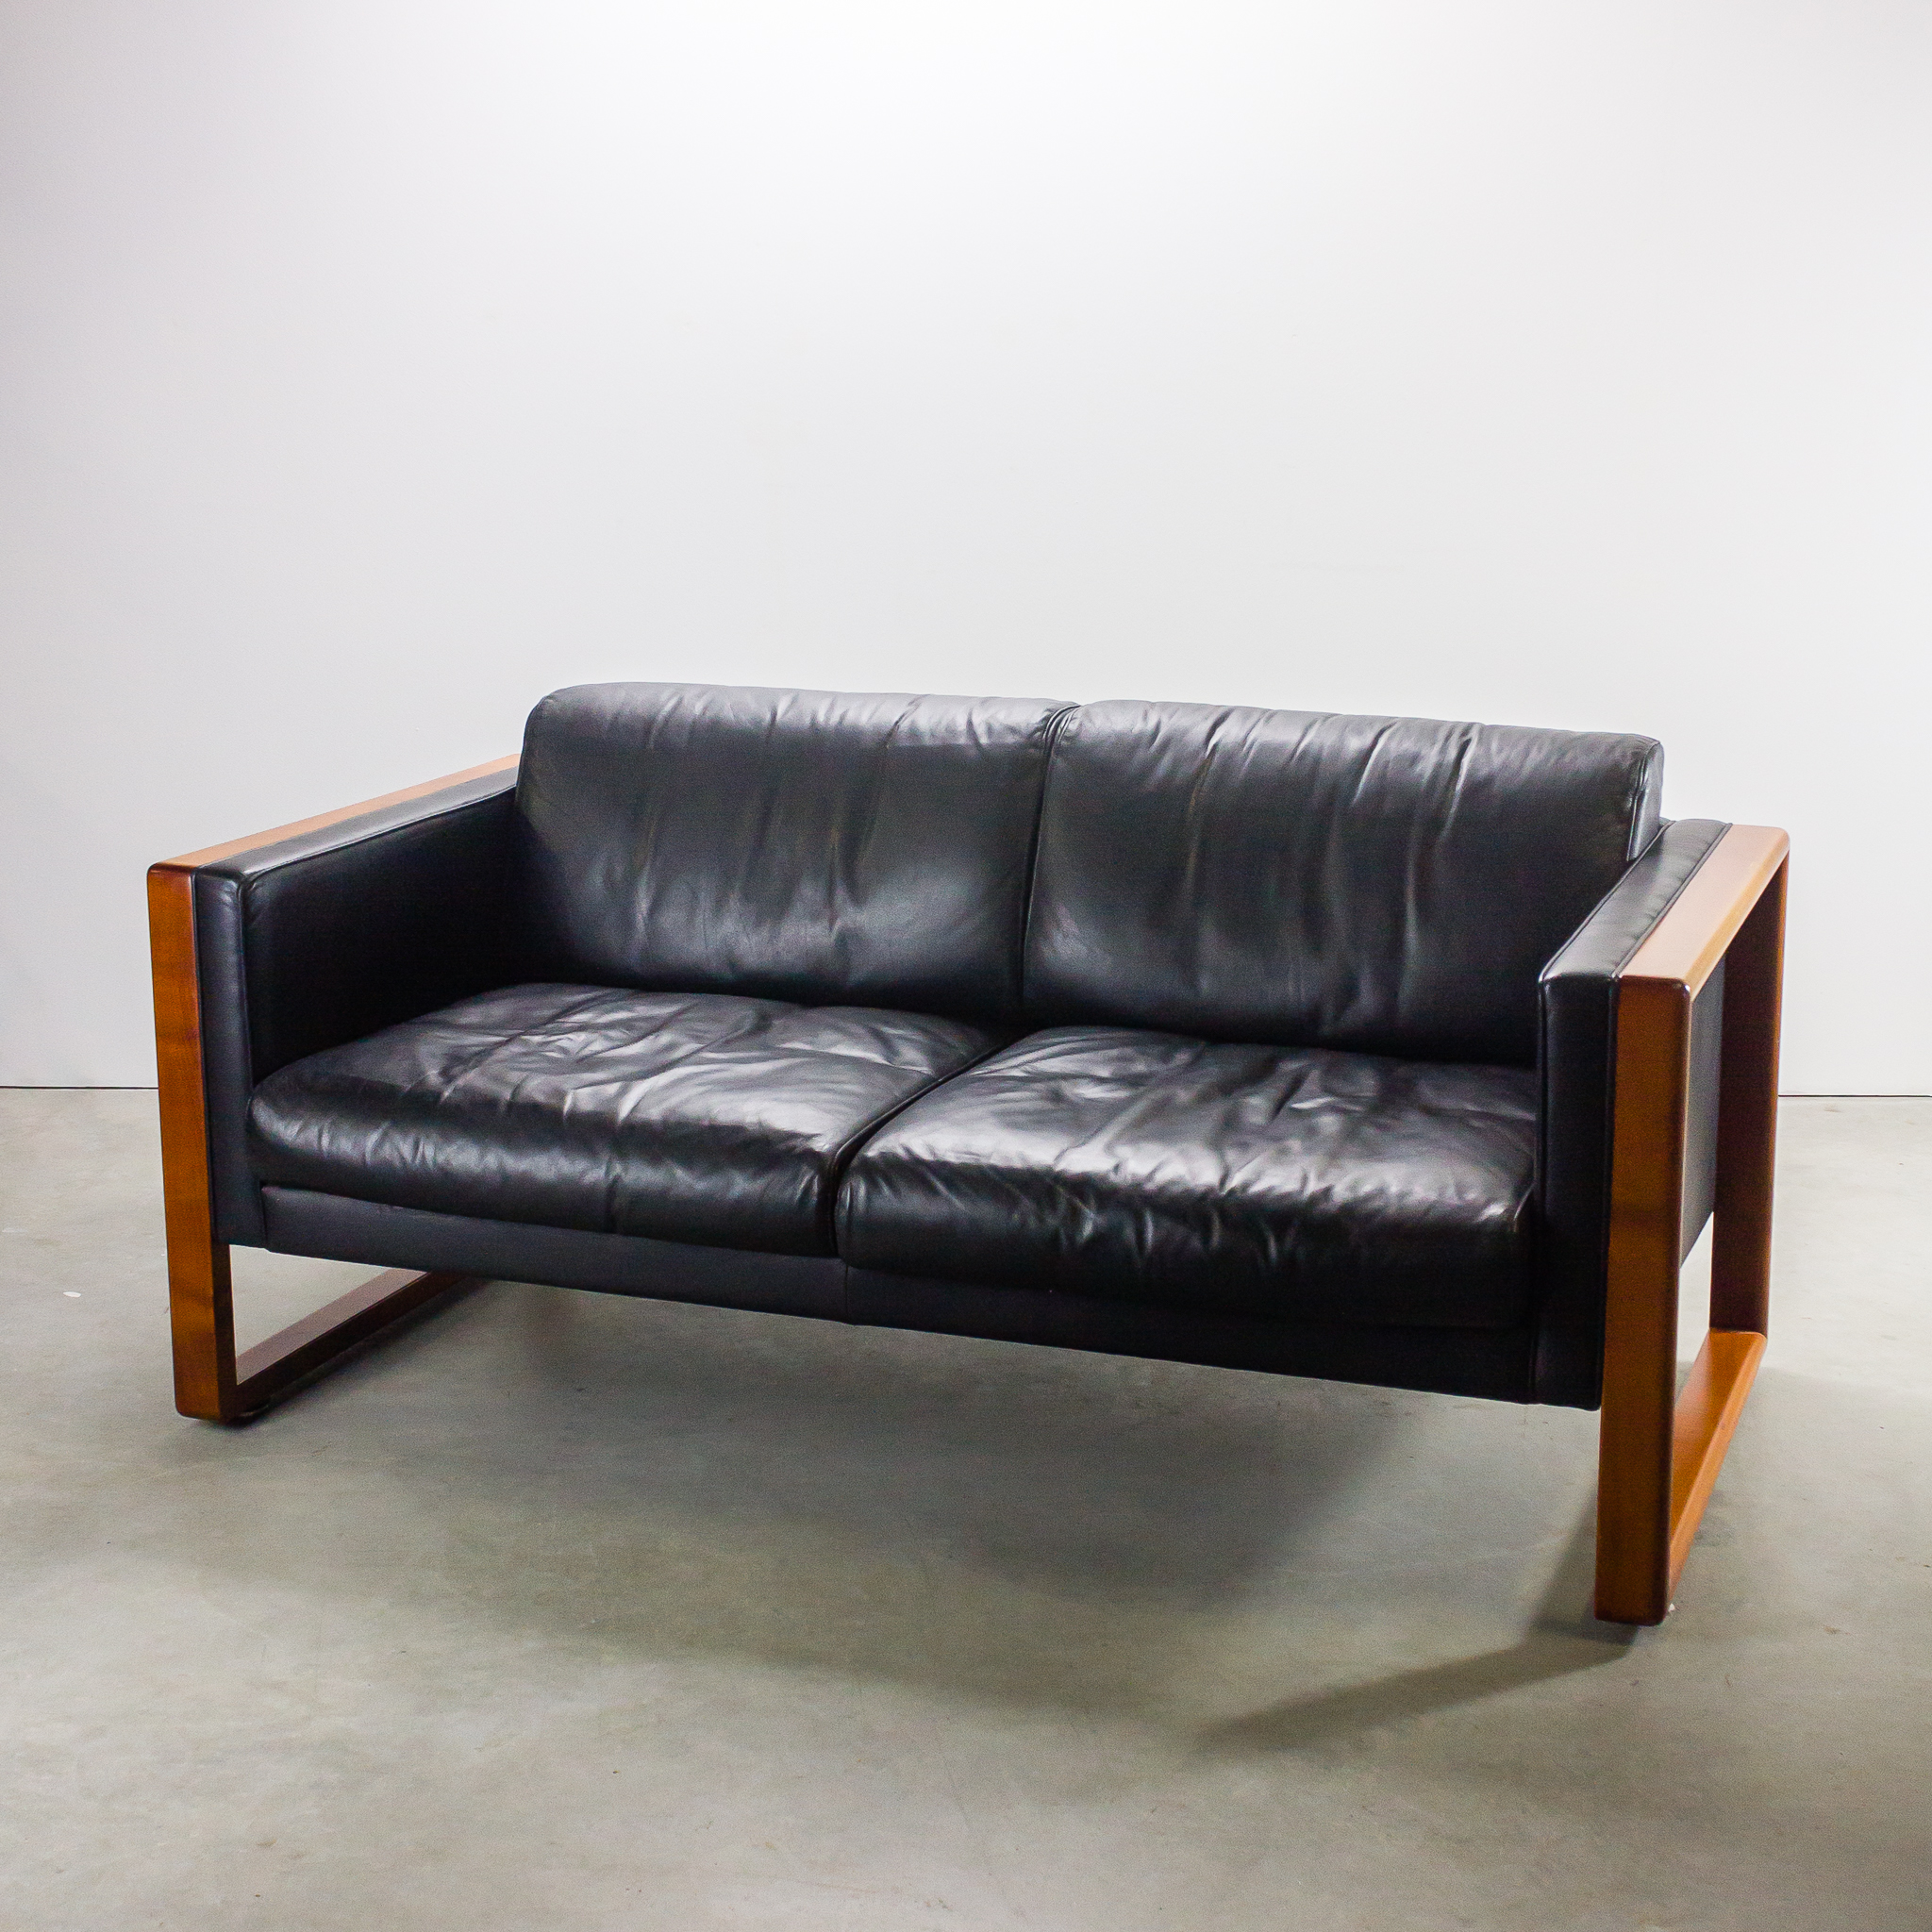 70 s walter knoll 2 zits sofa hout zwart leer barbmama. Black Bedroom Furniture Sets. Home Design Ideas